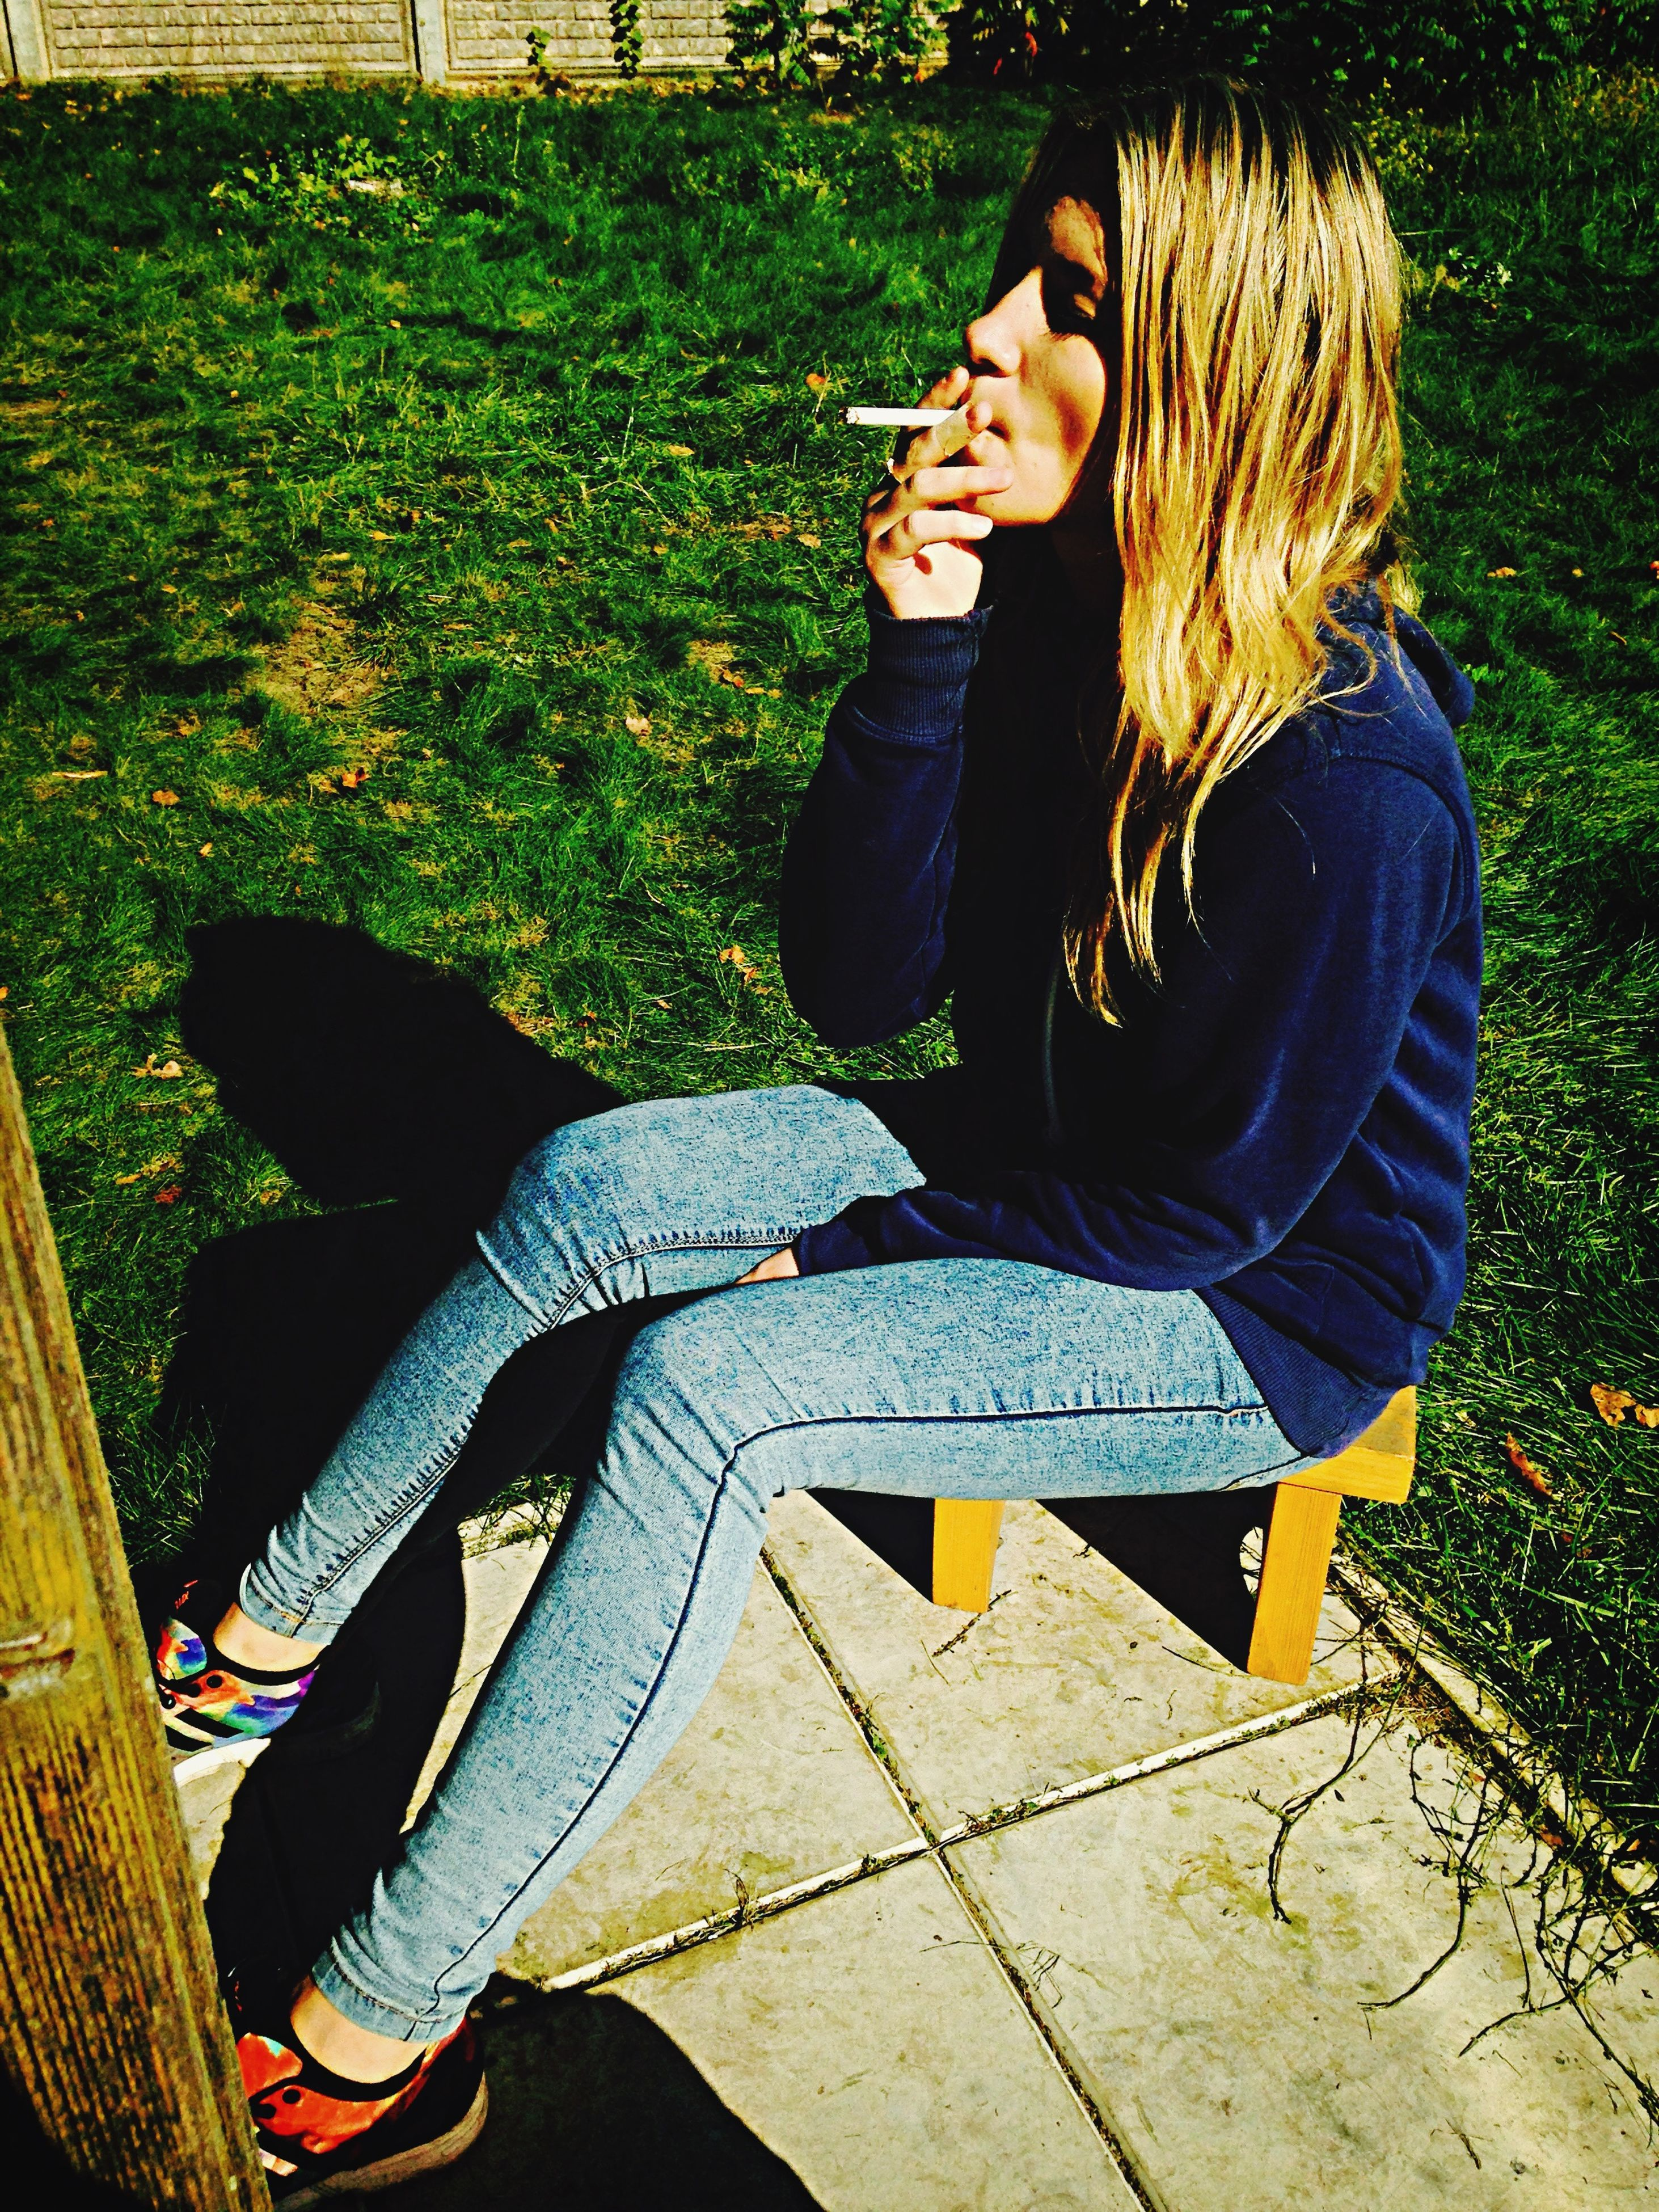 lifestyles, casual clothing, leisure activity, person, full length, young adult, young women, sitting, park - man made space, high angle view, outdoors, standing, front view, day, smiling, three quarter length, long hair, portrait